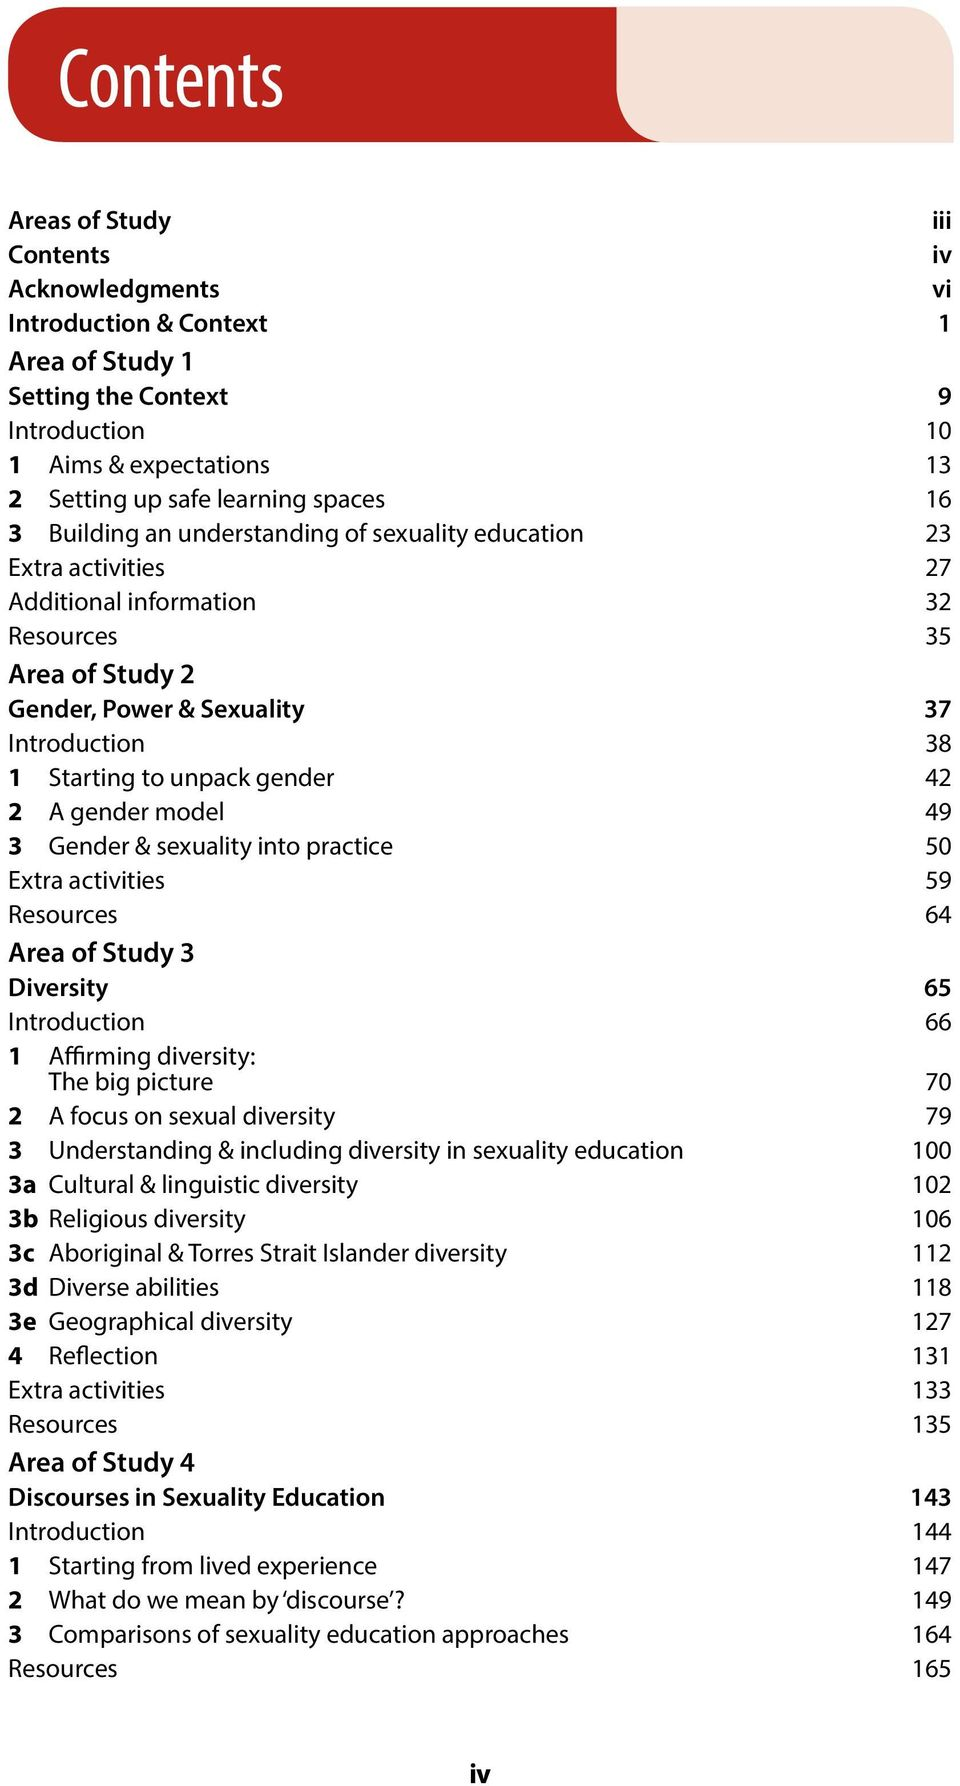 gender 42 2 A gender model 49 3 Gender & sexuality into practice 50 Extra activities 59 Resources 64 Area of Study 3 Diversity 65 Introduction 66 1 Affirming diversity: The big picture 70 2 A focus